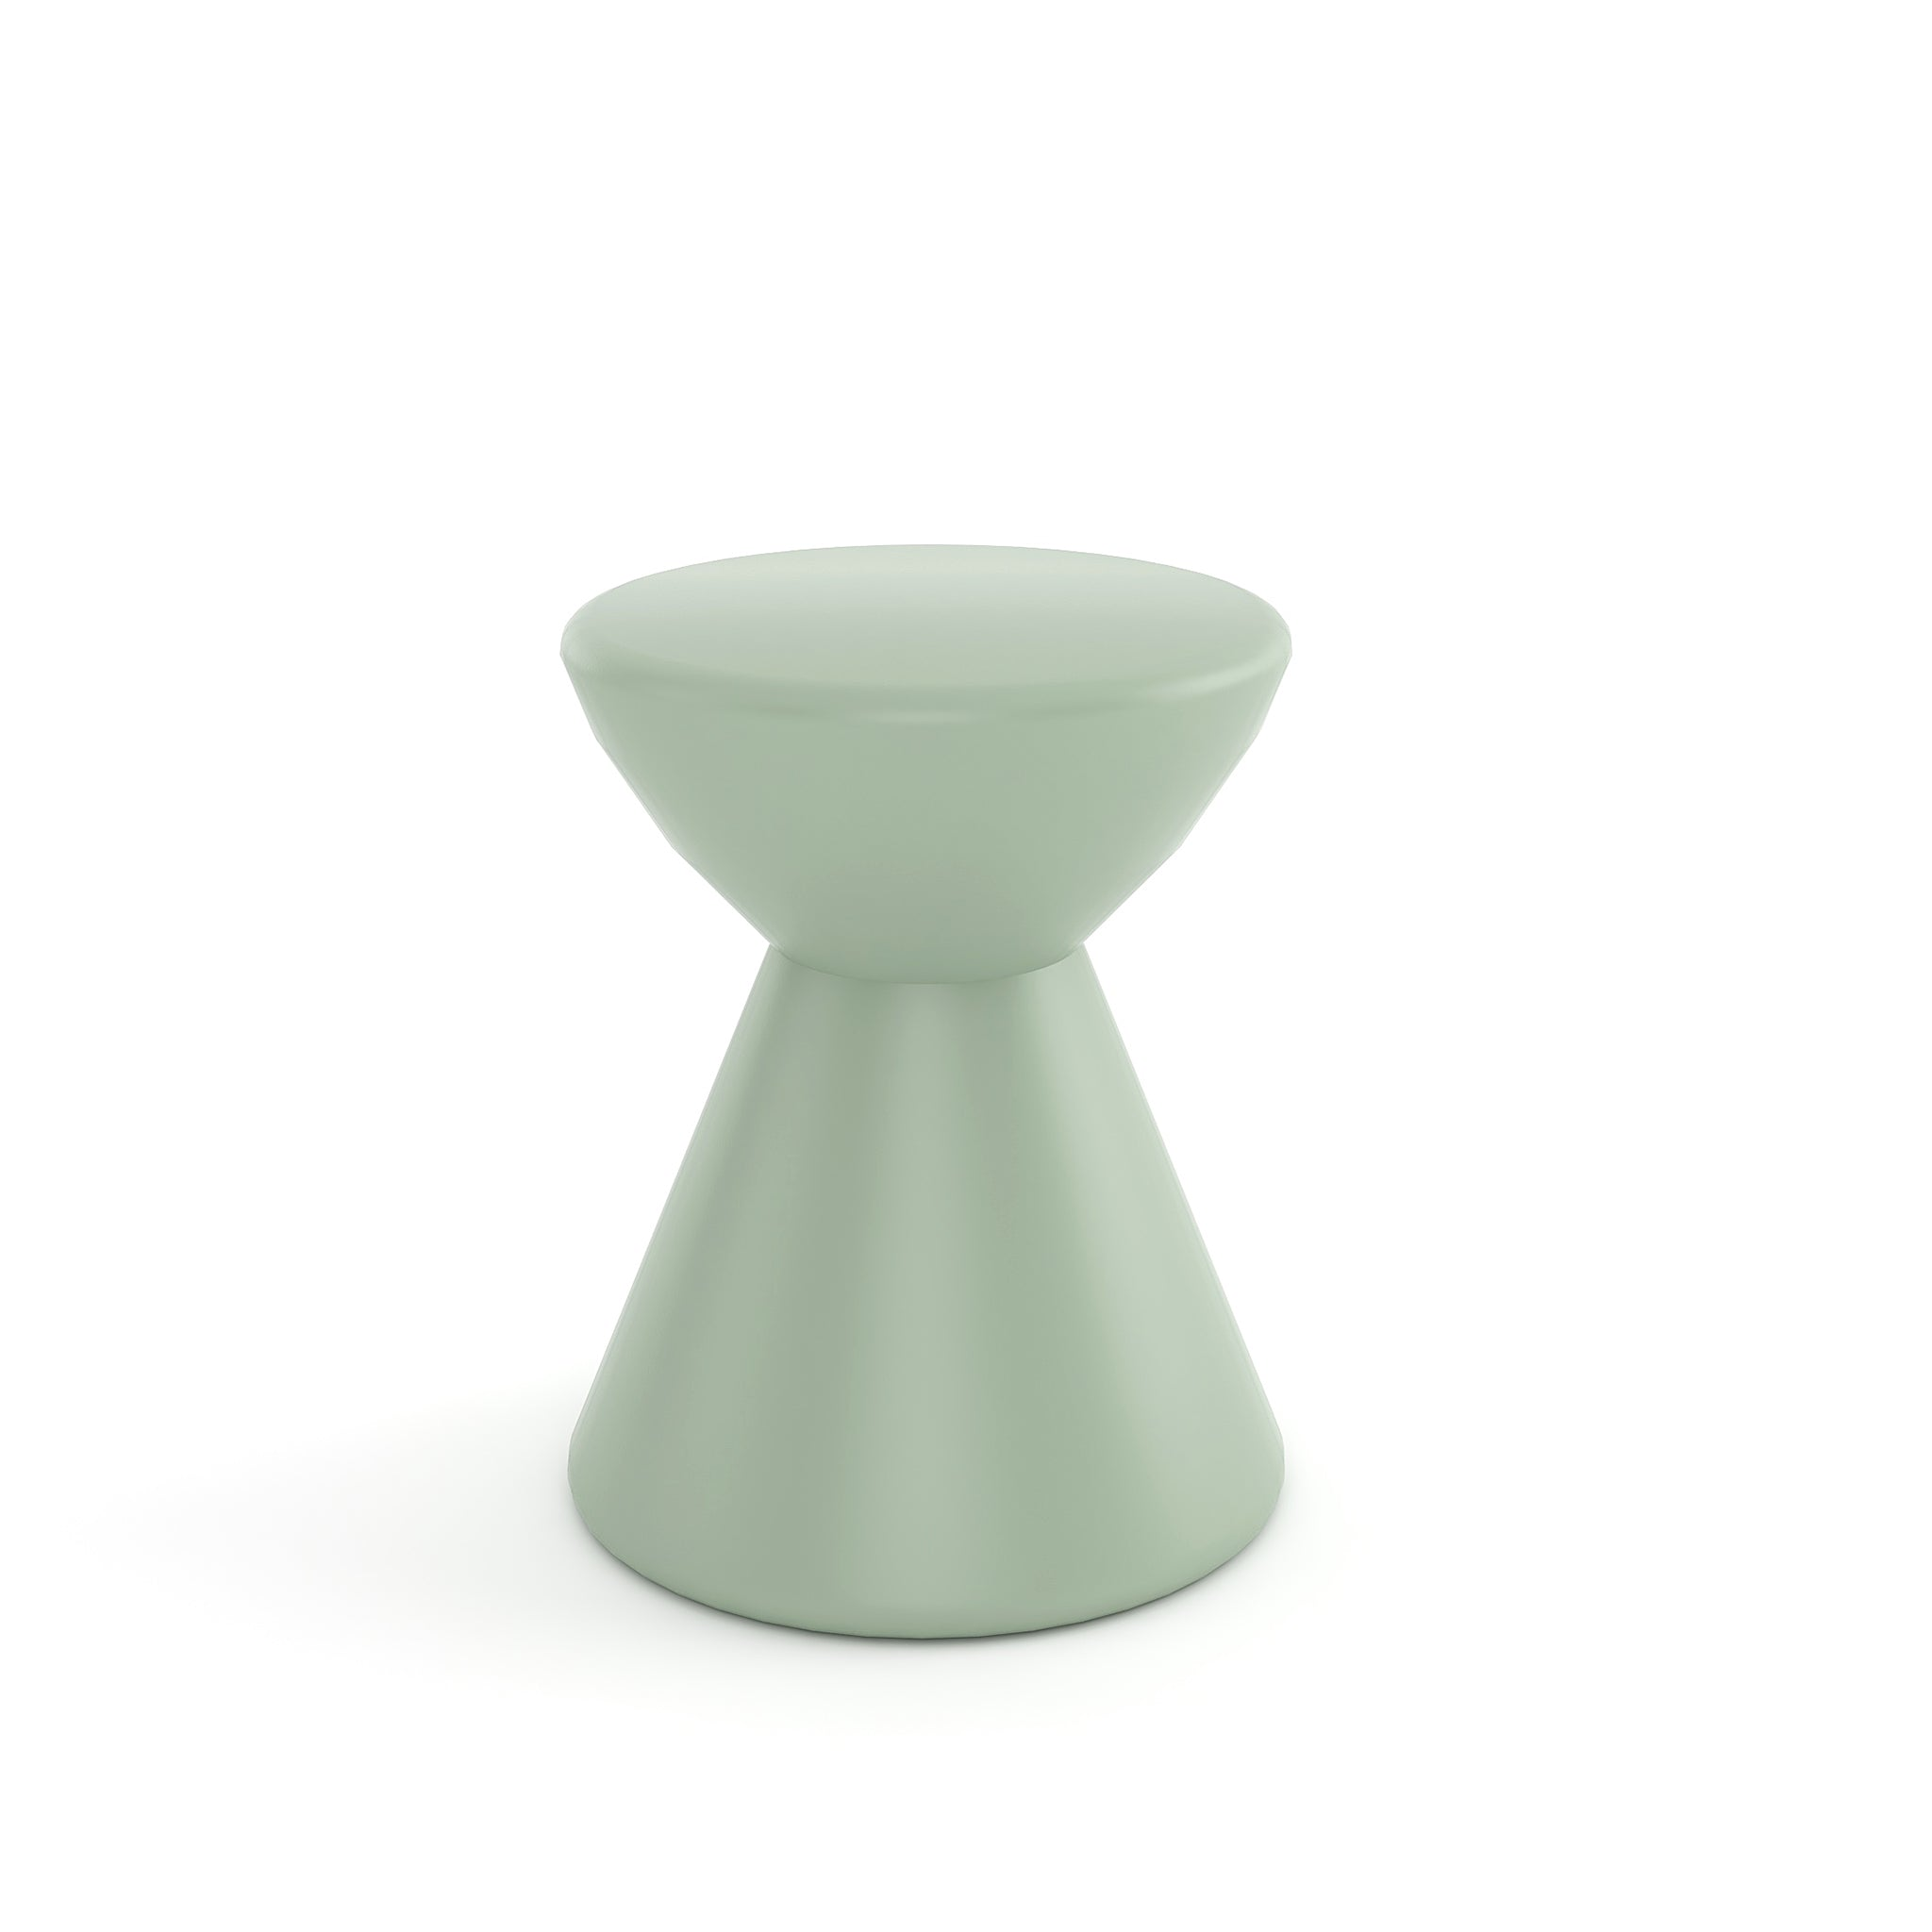 Roto Stool by m.a.d - Steelcase Hong Kong